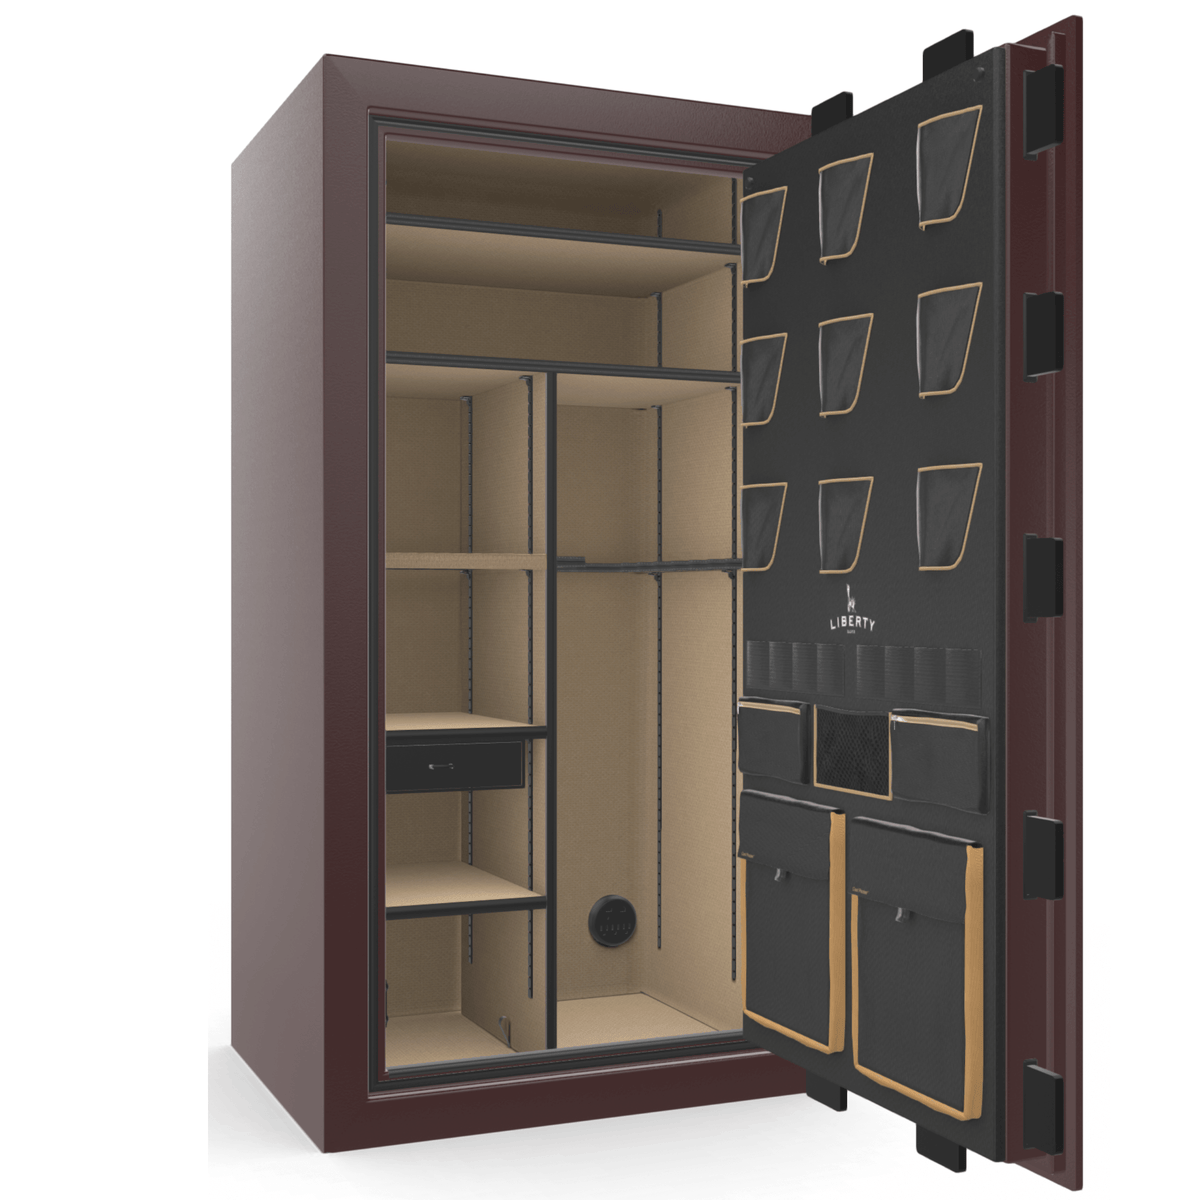 "Classic Plus | 40 | Level 7 Security | 110 Minute Fire Protection | Burgundy | Brass Mechanical Lock | 65.5""(H) x 36""(W) x 32""(D)"